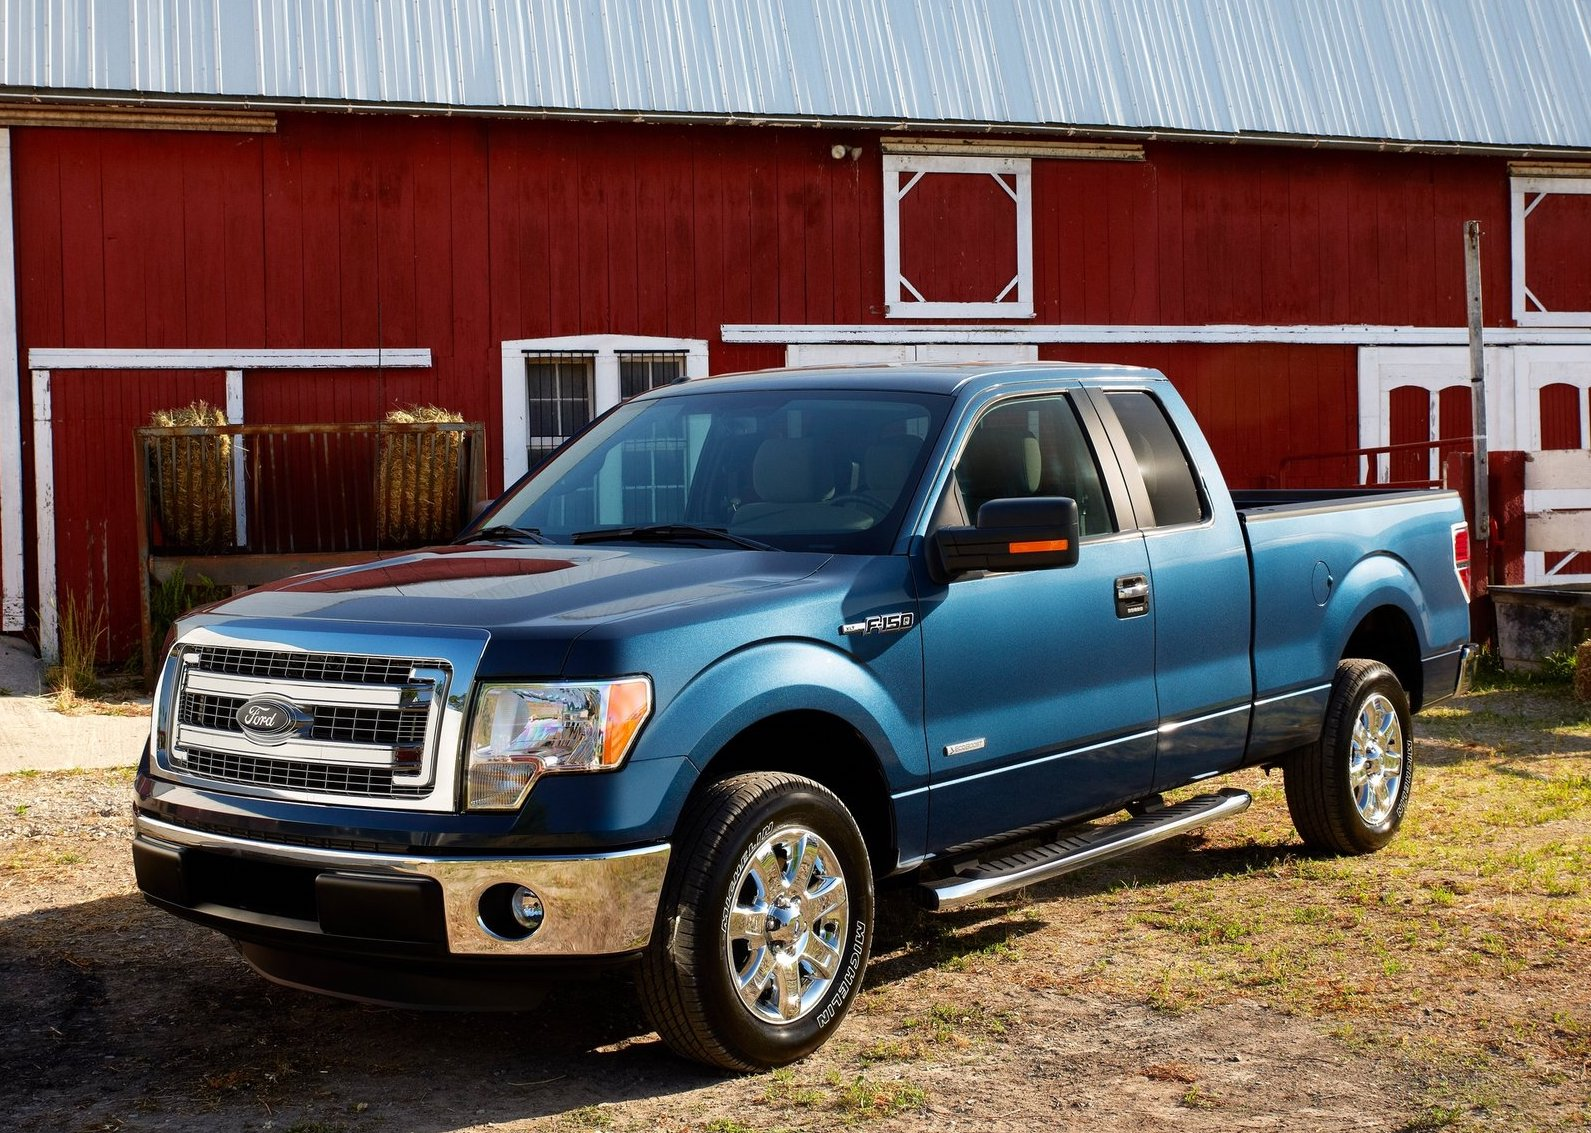 a blue ford f-150 from the 2013 model year barked in front of a scenic red barn